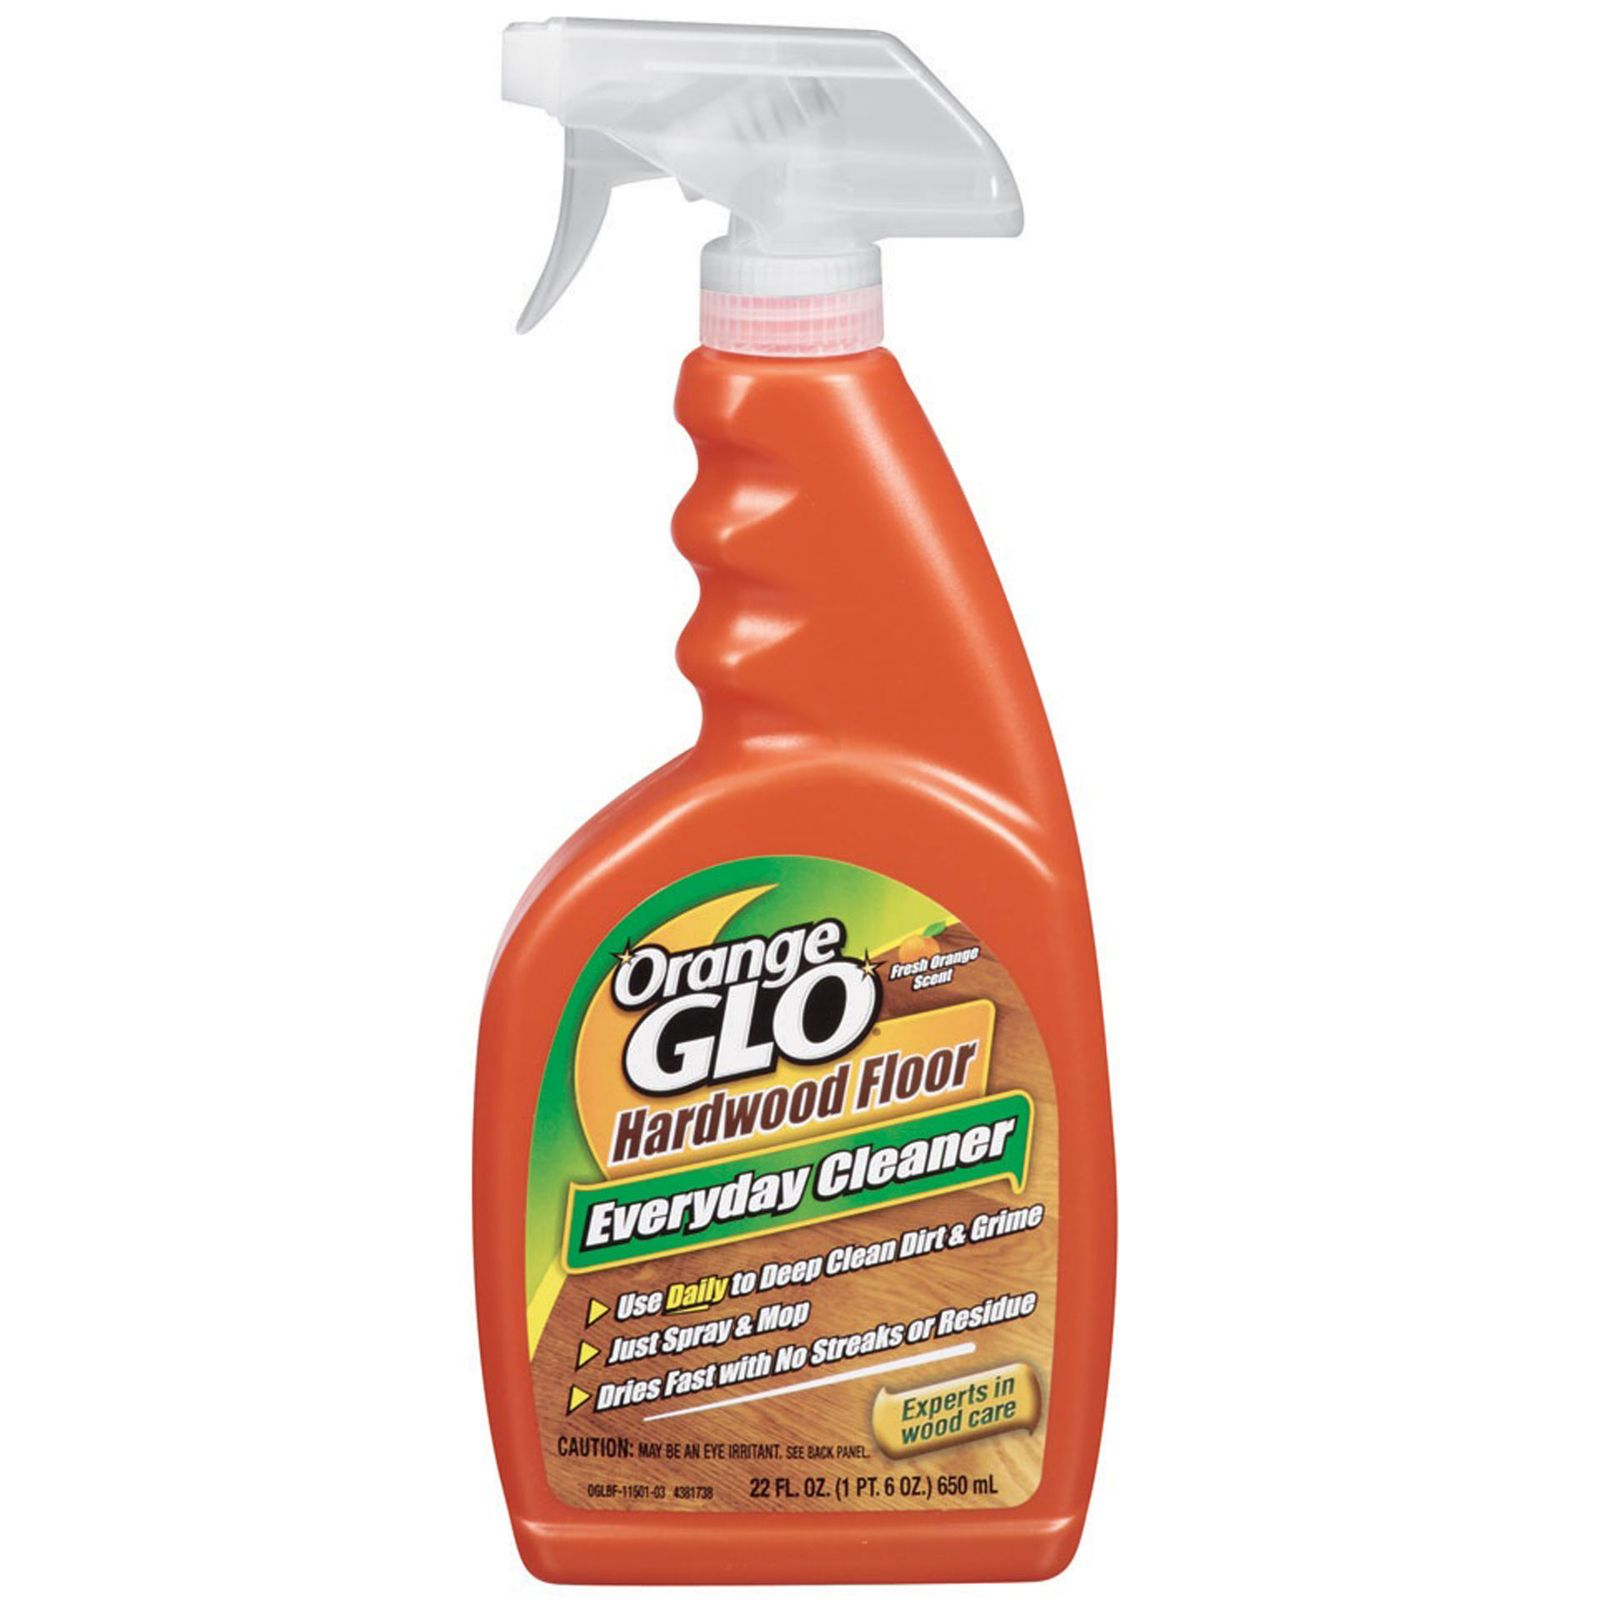 Orange glo hardwood floor everyday cleaner review for Hardwood floor cleaner